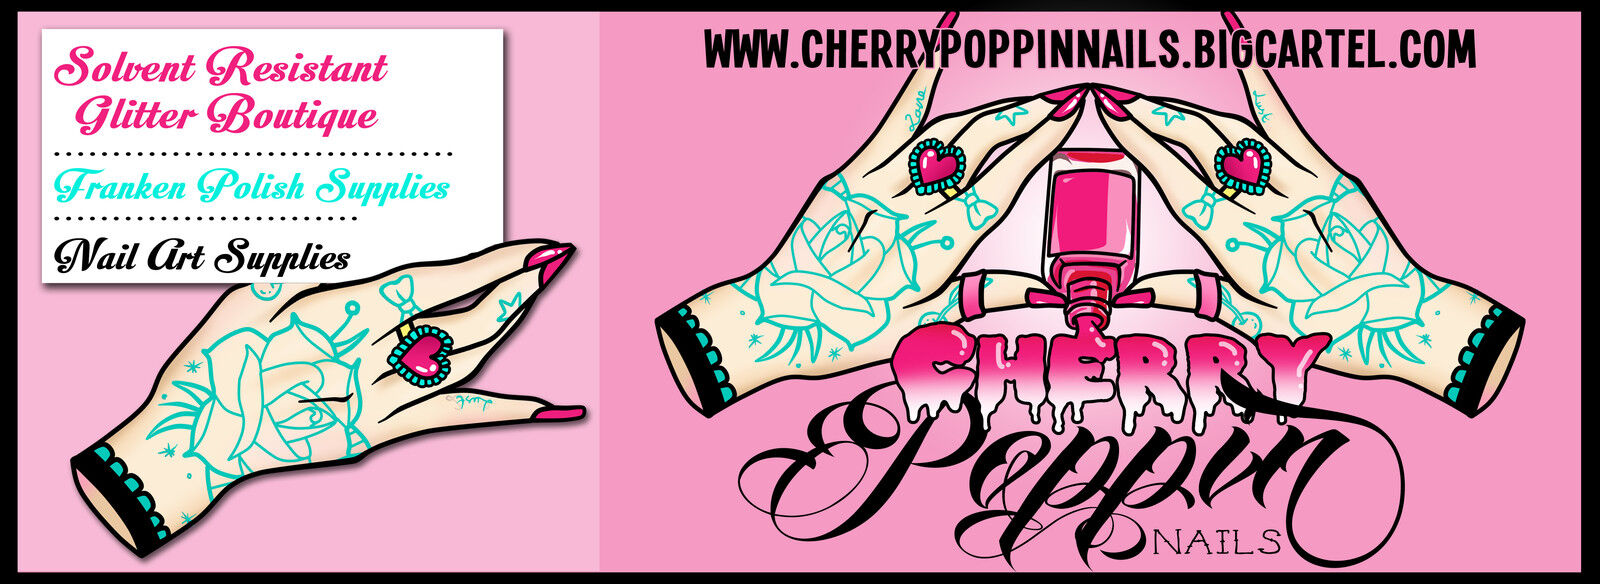 CherryPoppinNails